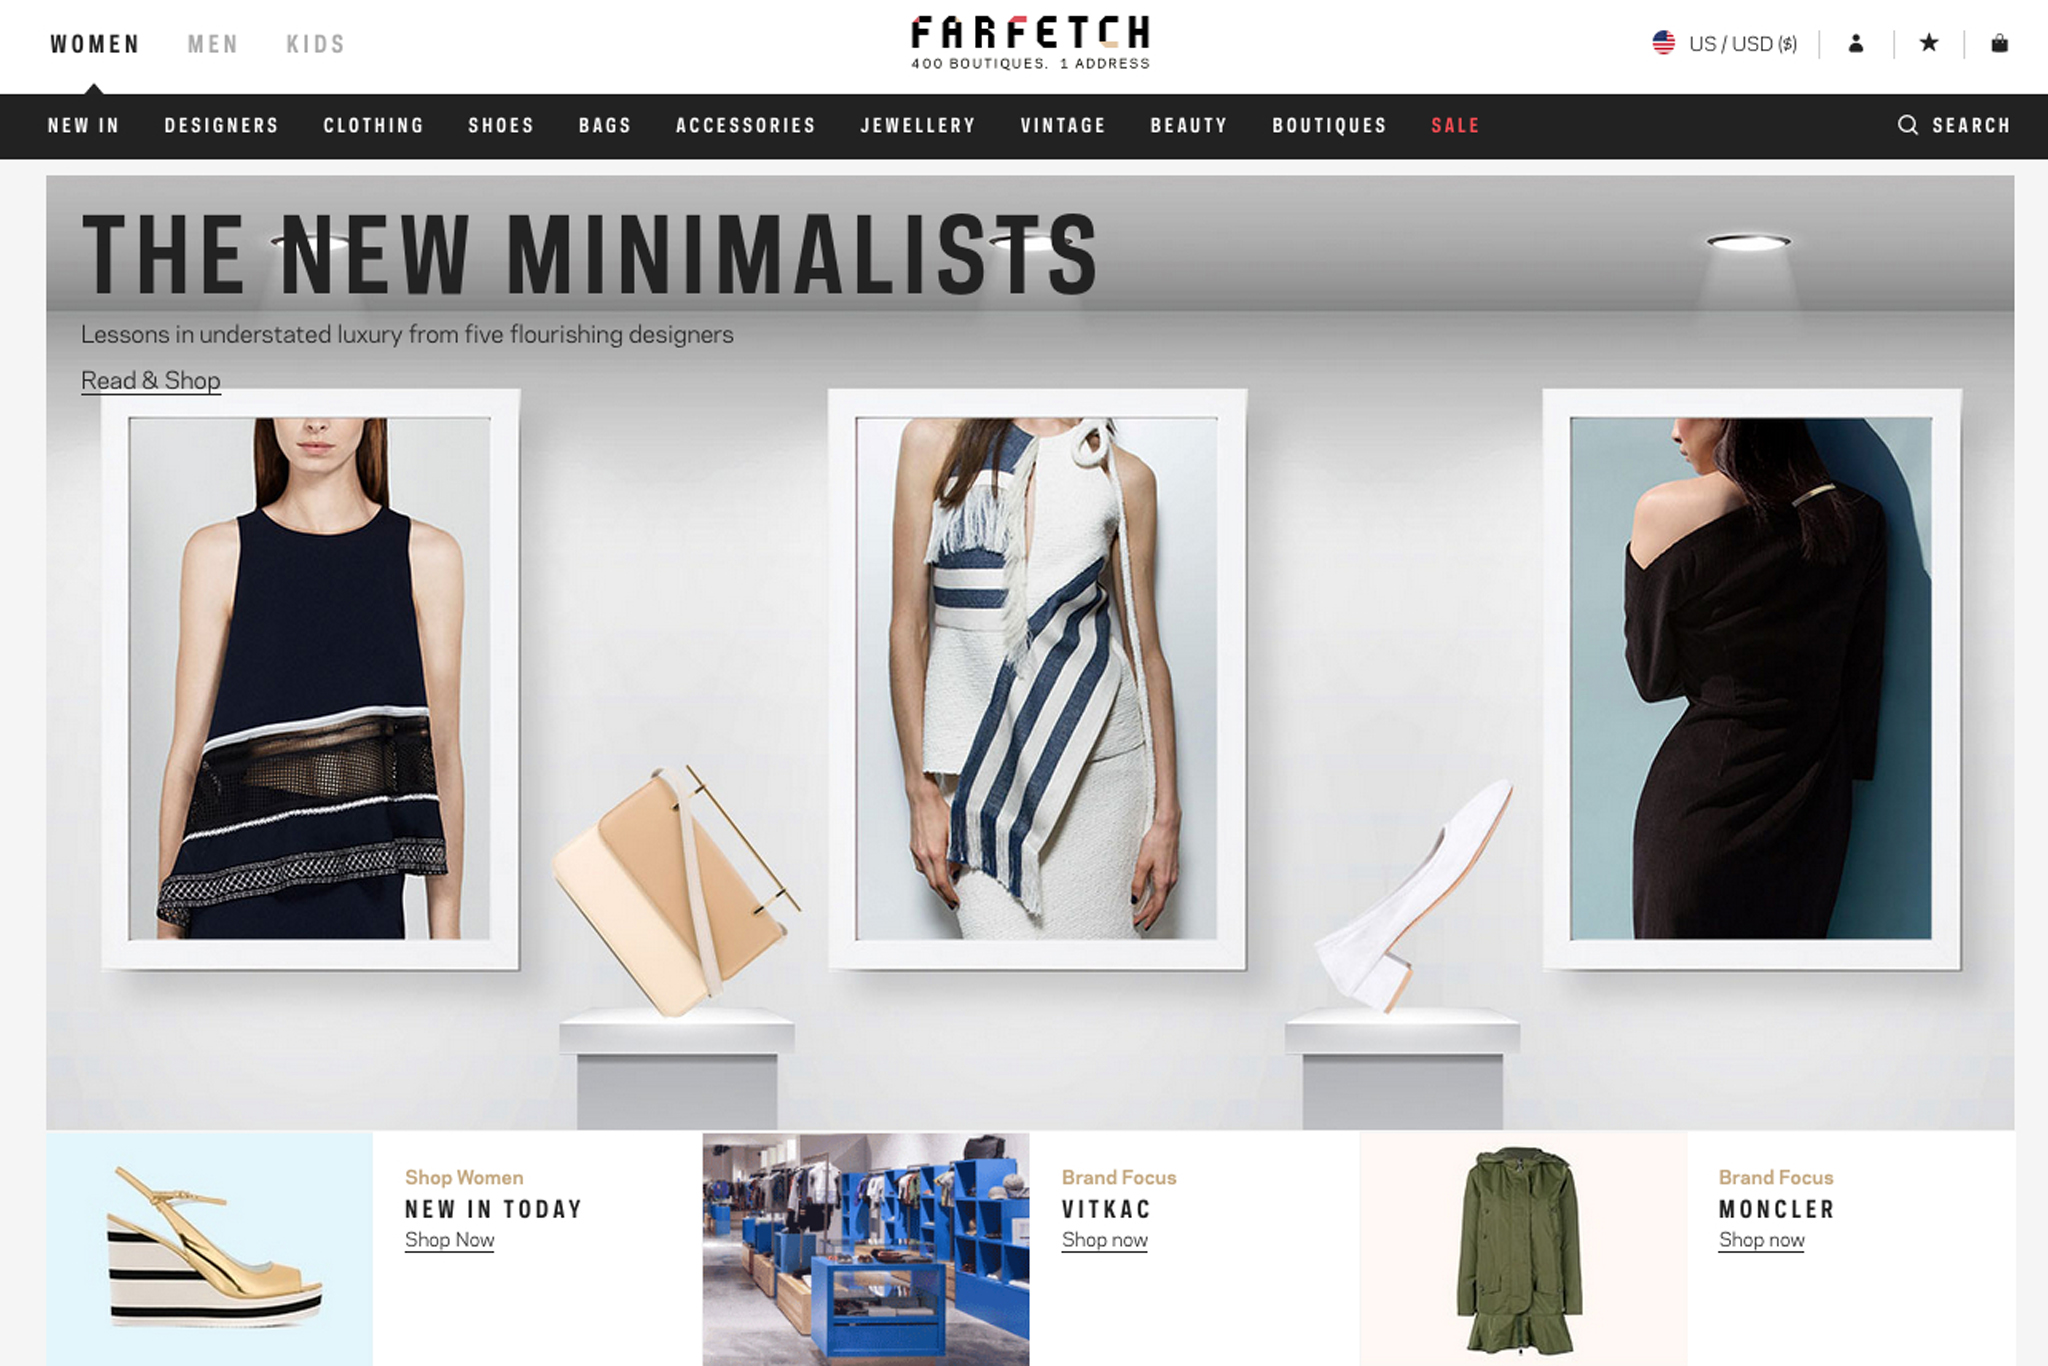 A page from the Farfetch Web site.